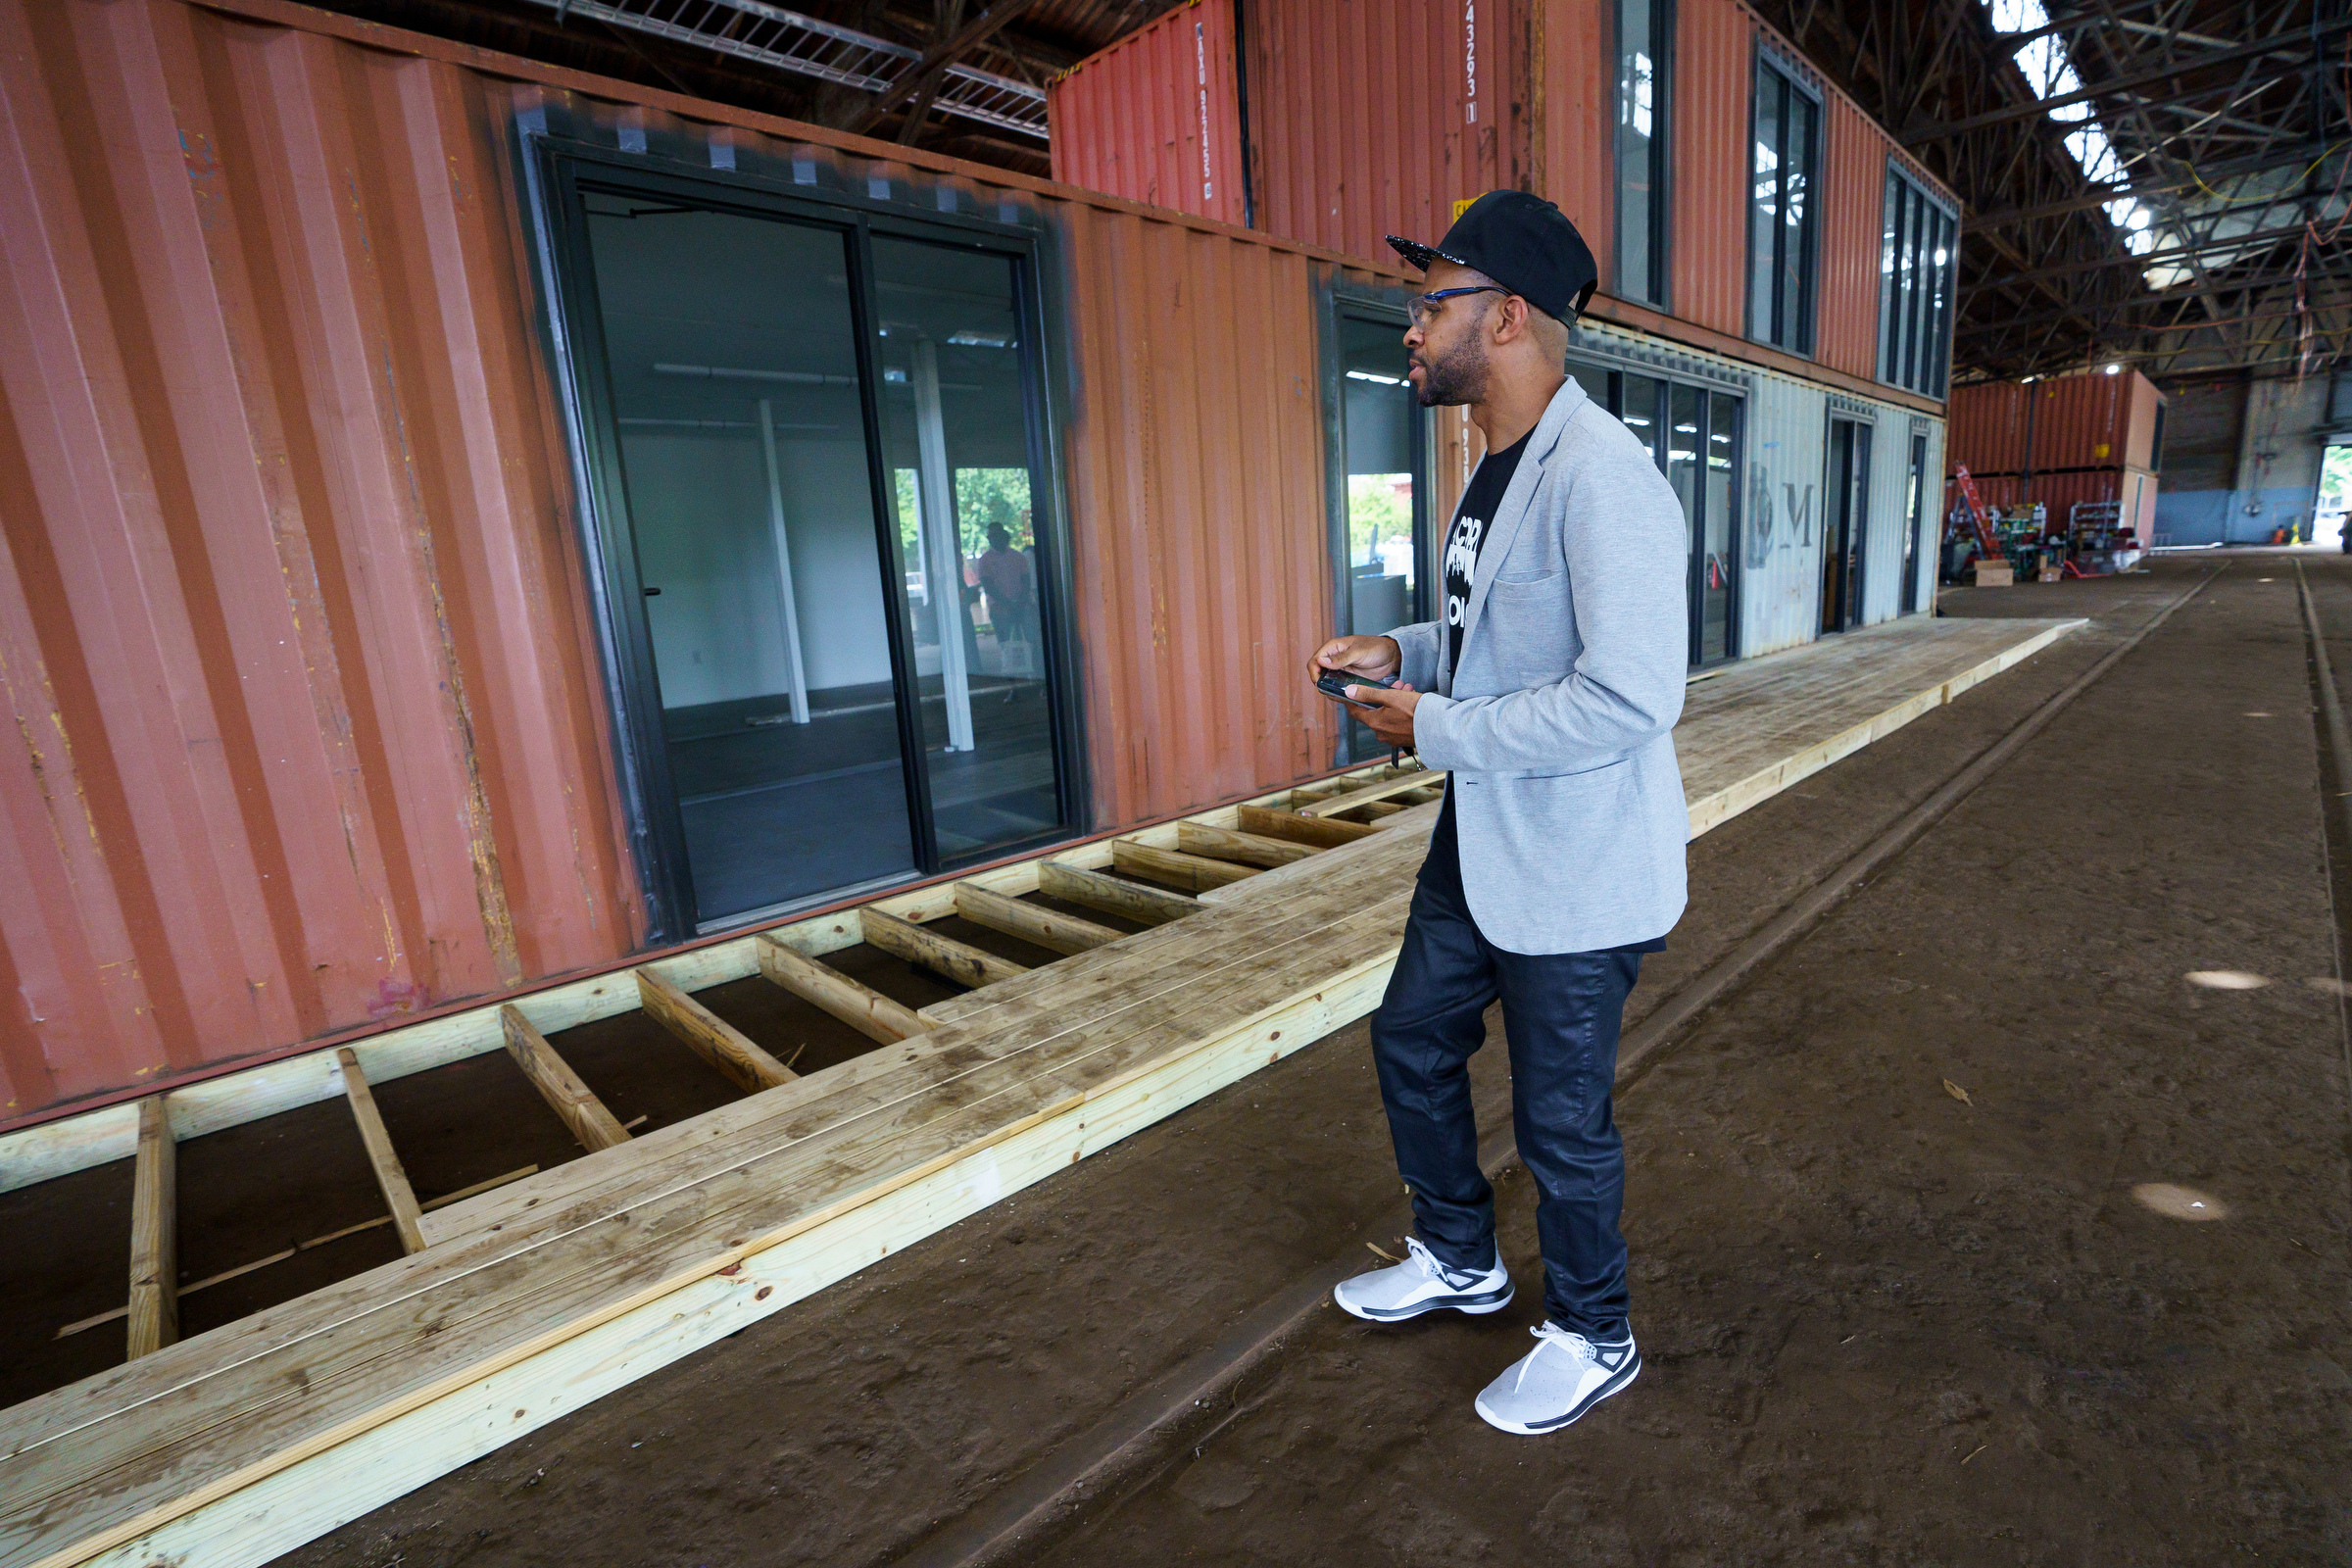 Doll Artist Cori Shepherd checks out the new studio spaces under construction at the Cherry Street Pier, Wednesday, August 22, 2018. He will have a studio space there once the area is officially open.